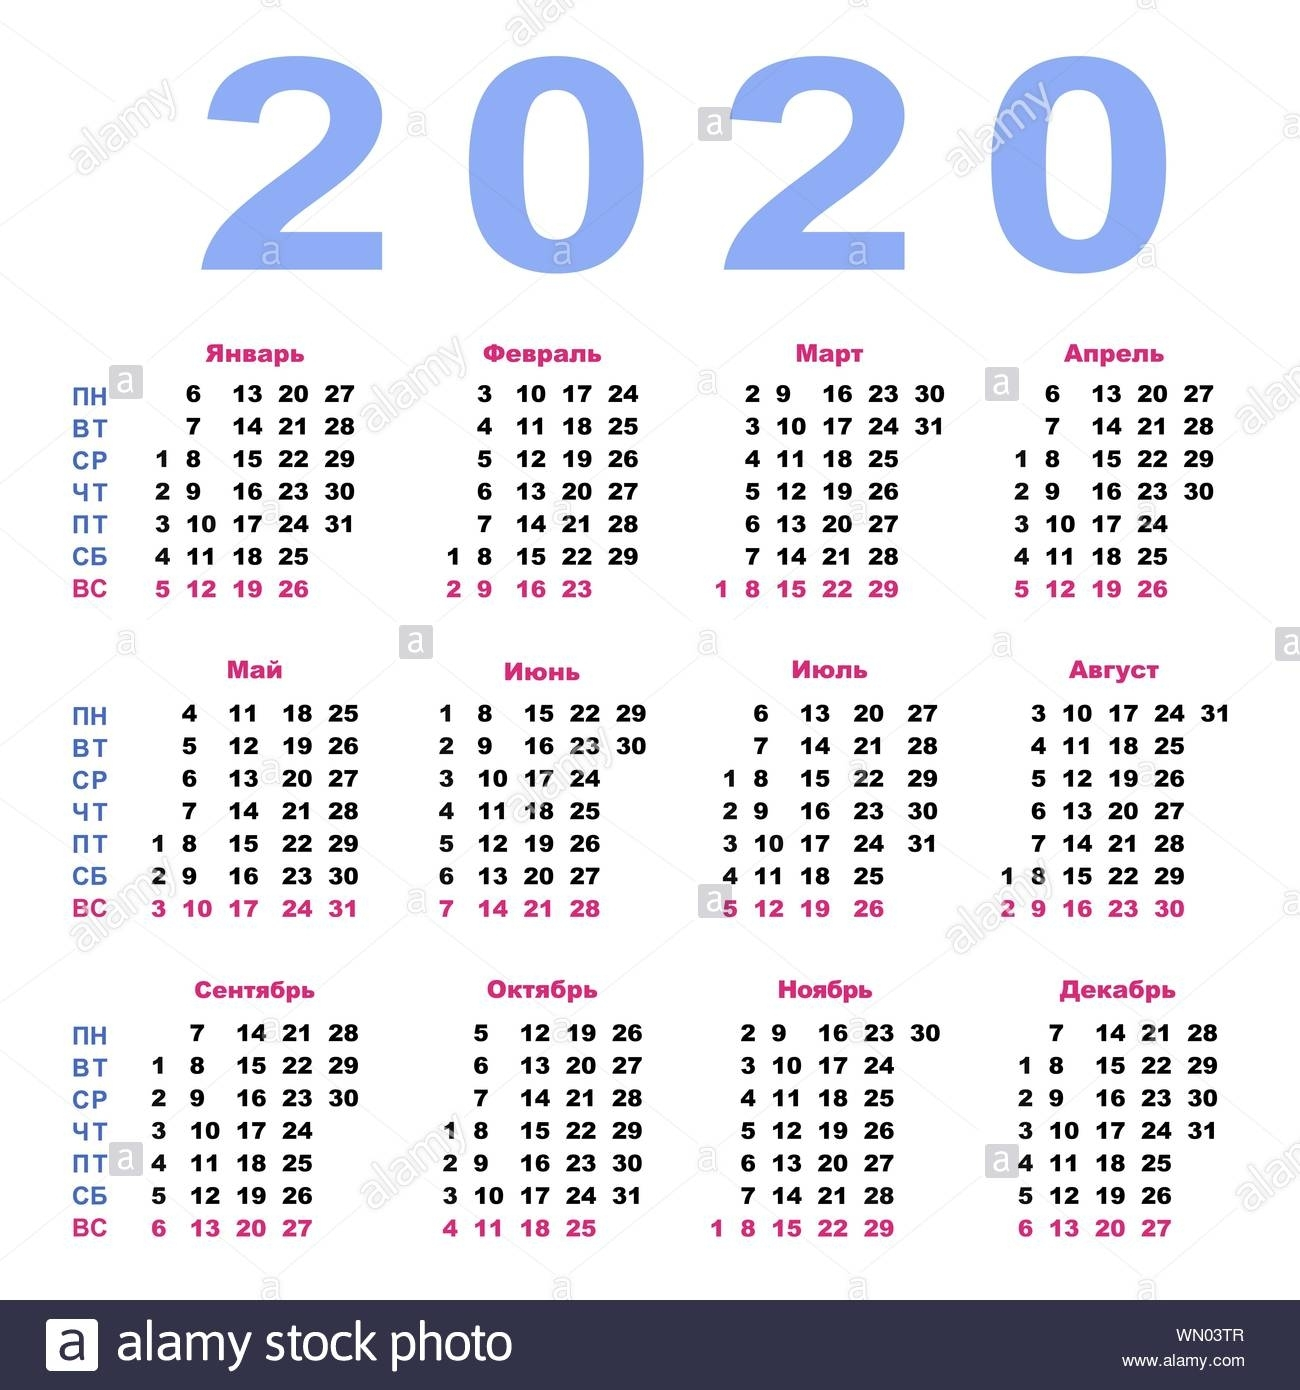 Calendar 2020 High Resolution Stock Photography And Images